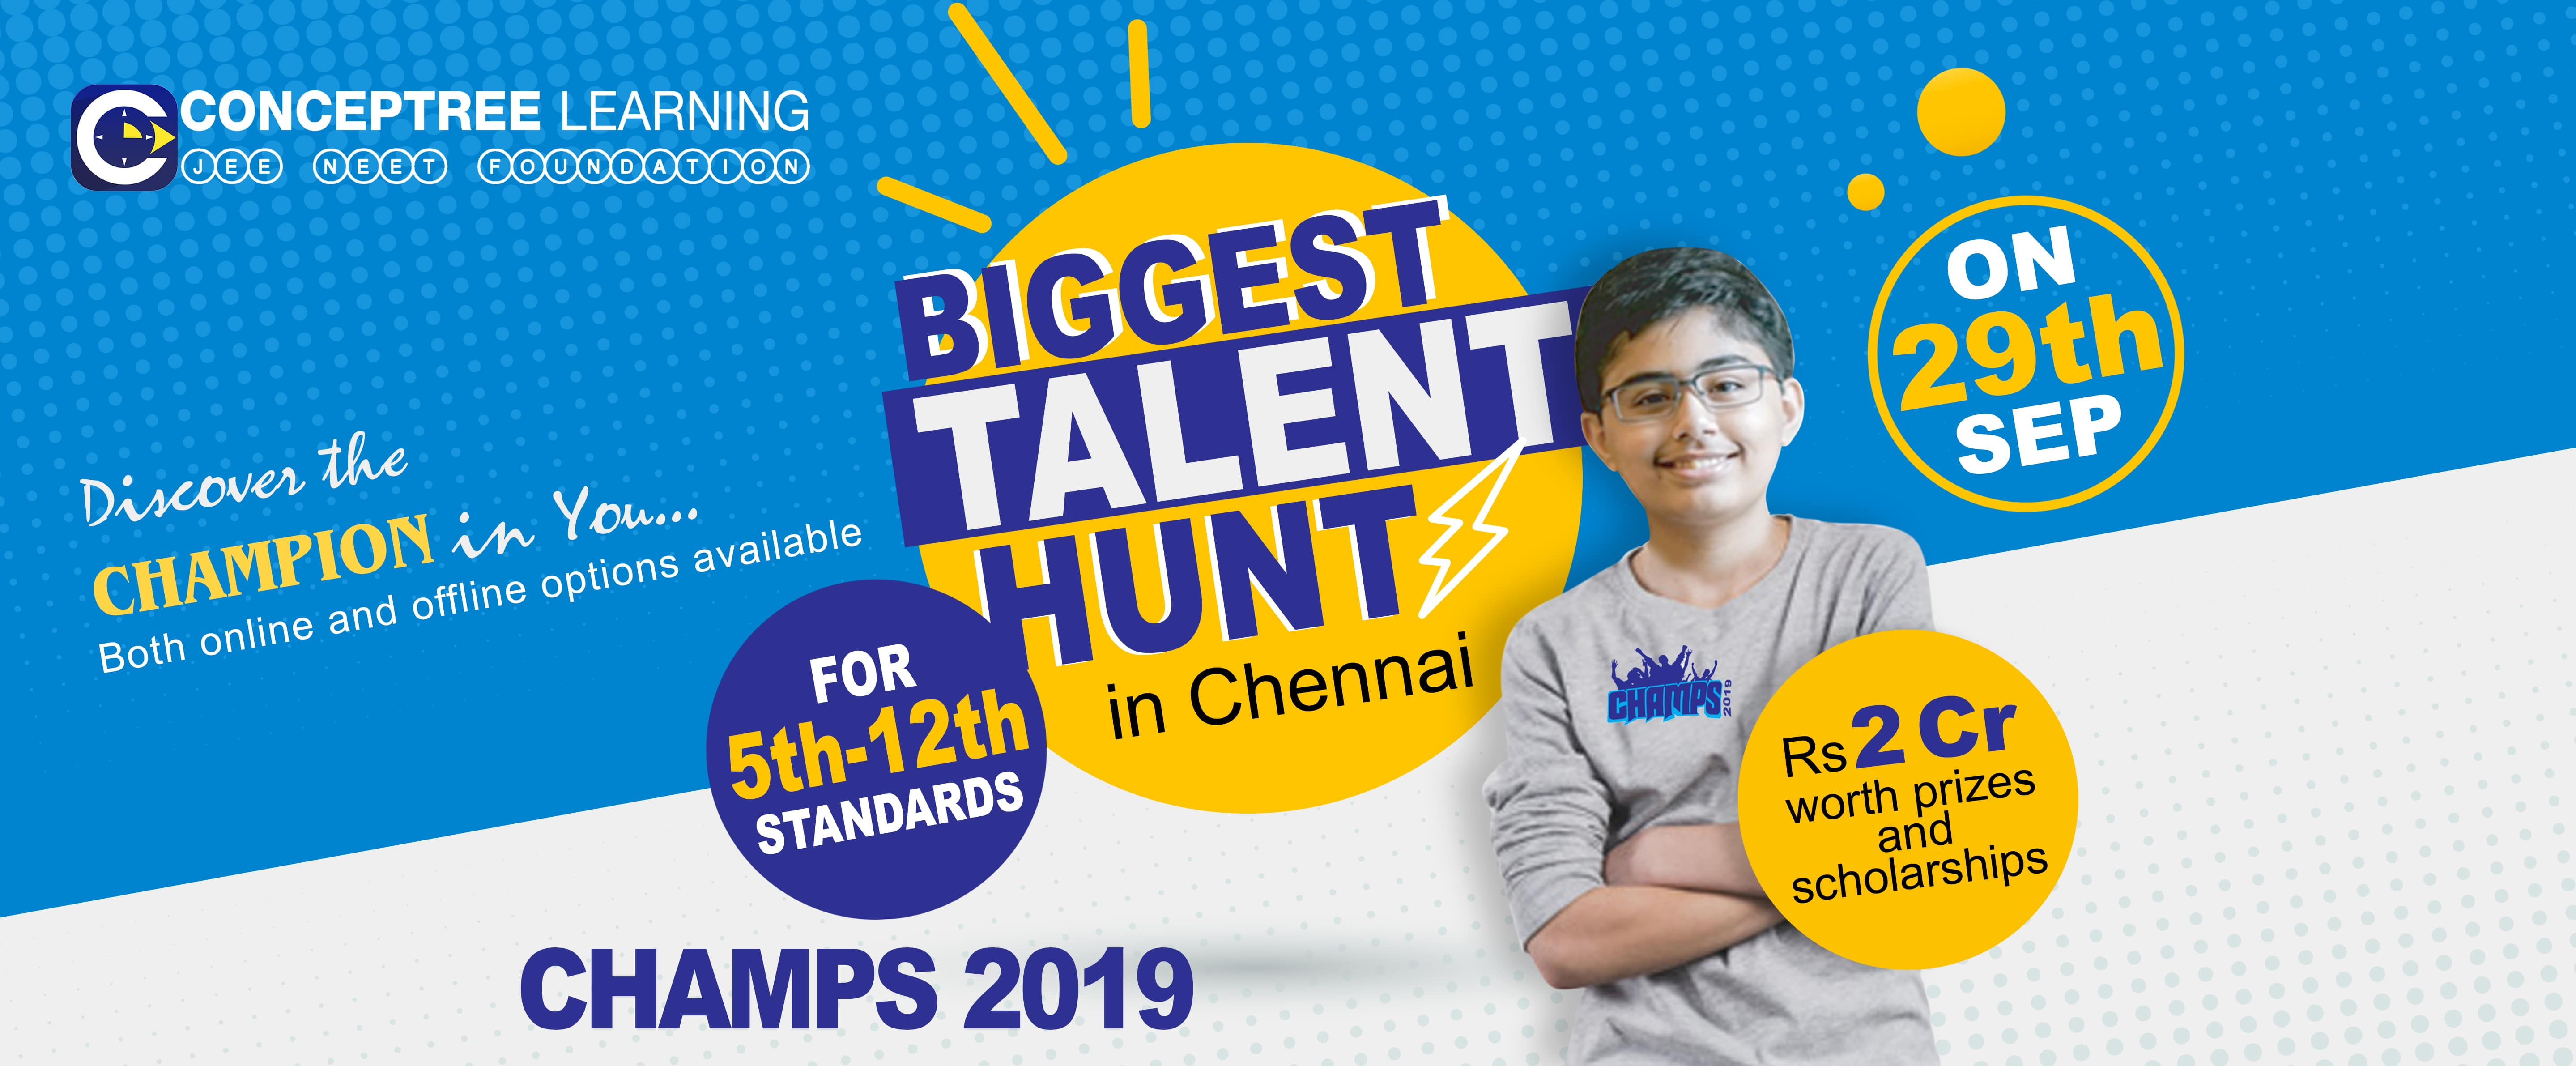 CHAMPS 2019-Biggest Talent Test in Chennai